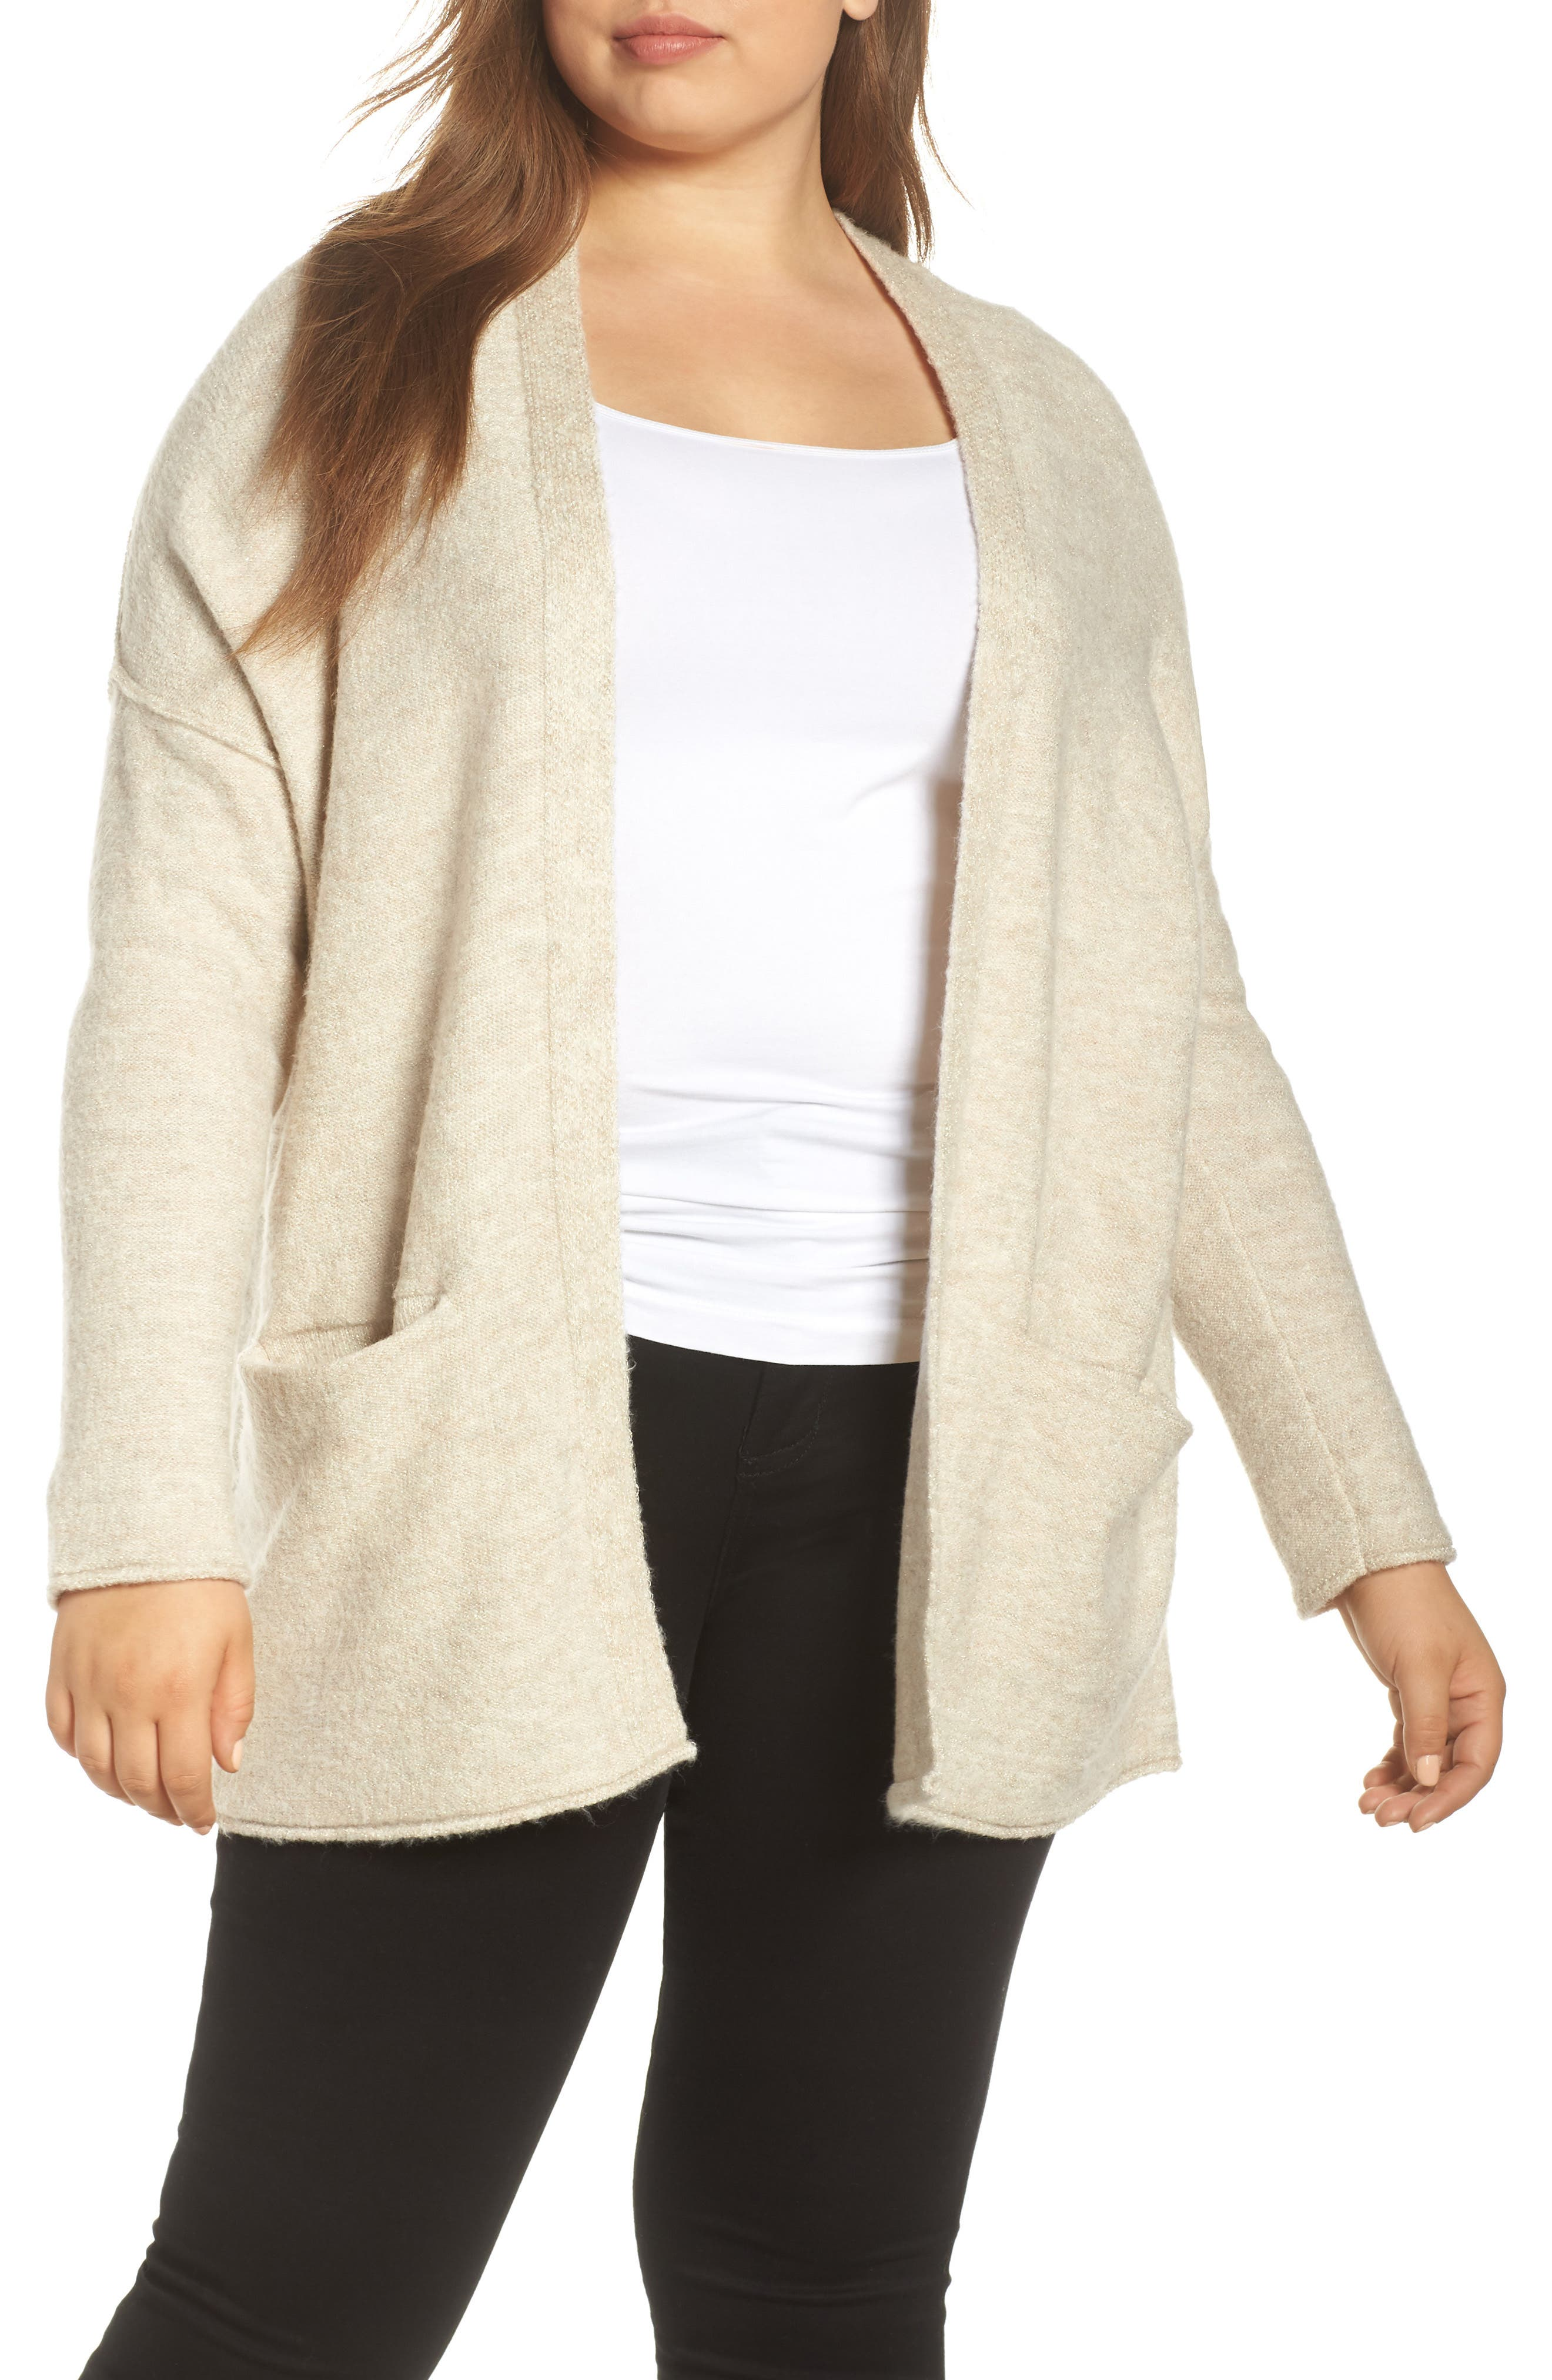 Dolman Sleeve Cardigan,                             Main thumbnail 1, color,                             BEIGE OATMEAL SHIMMER